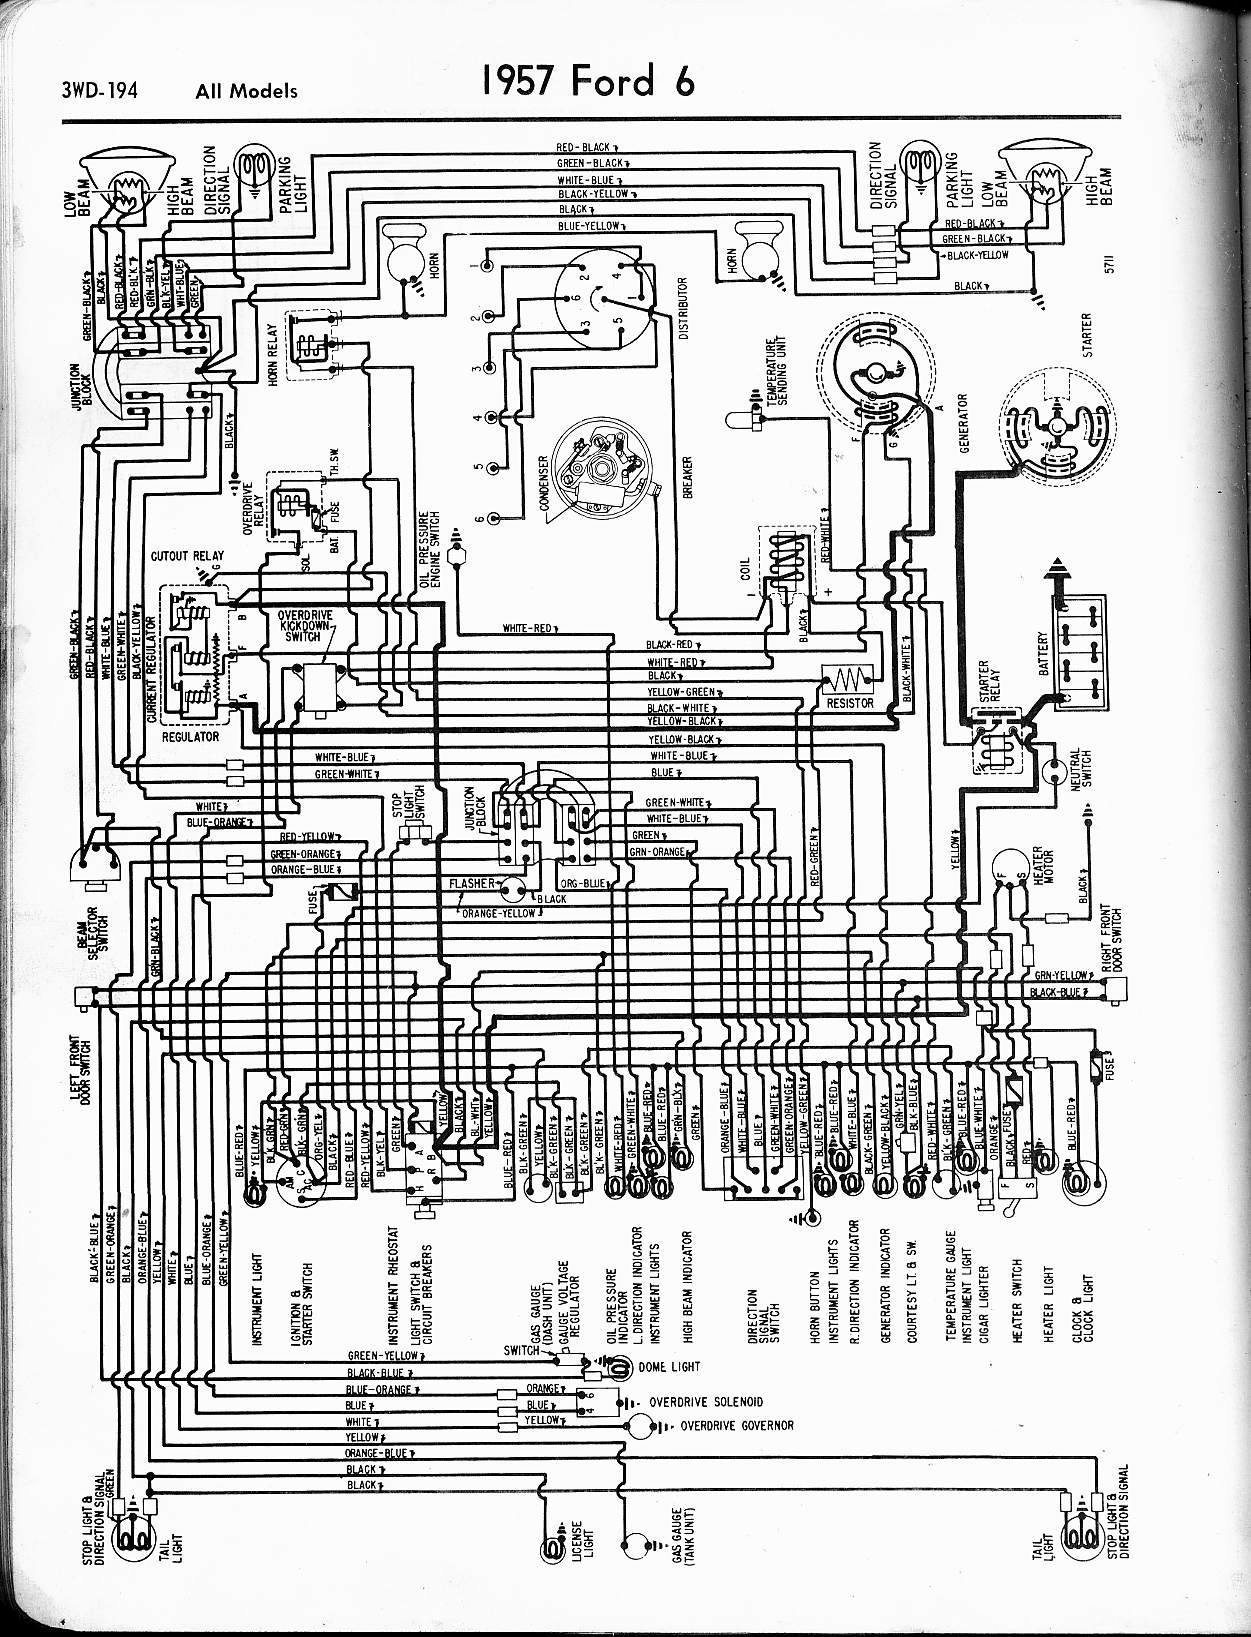 57_ford_wiring  Ford Mustang Alternator Wiring Diagram on 1992 mustang alternator wiring diagram, 1983 mustang alternator wiring diagram, 1973 mustang alternator wiring diagram, 1980 mustang alternator wiring diagram, 1972 mustang alternator wiring diagram, 1971 mustang alternator wiring diagram, 1986 mustang alternator wiring diagram, 1990 mustang alternator wiring diagram, 1985 mustang alternator wiring diagram, 1969 mustang alternator wiring diagram, 1967 mustang alternator wiring diagram, 1970 mustang alternator wiring diagram, 1966 mustang alternator wiring diagram, 1968 mustang alternator wiring diagram, 1989 mustang alternator wiring diagram,